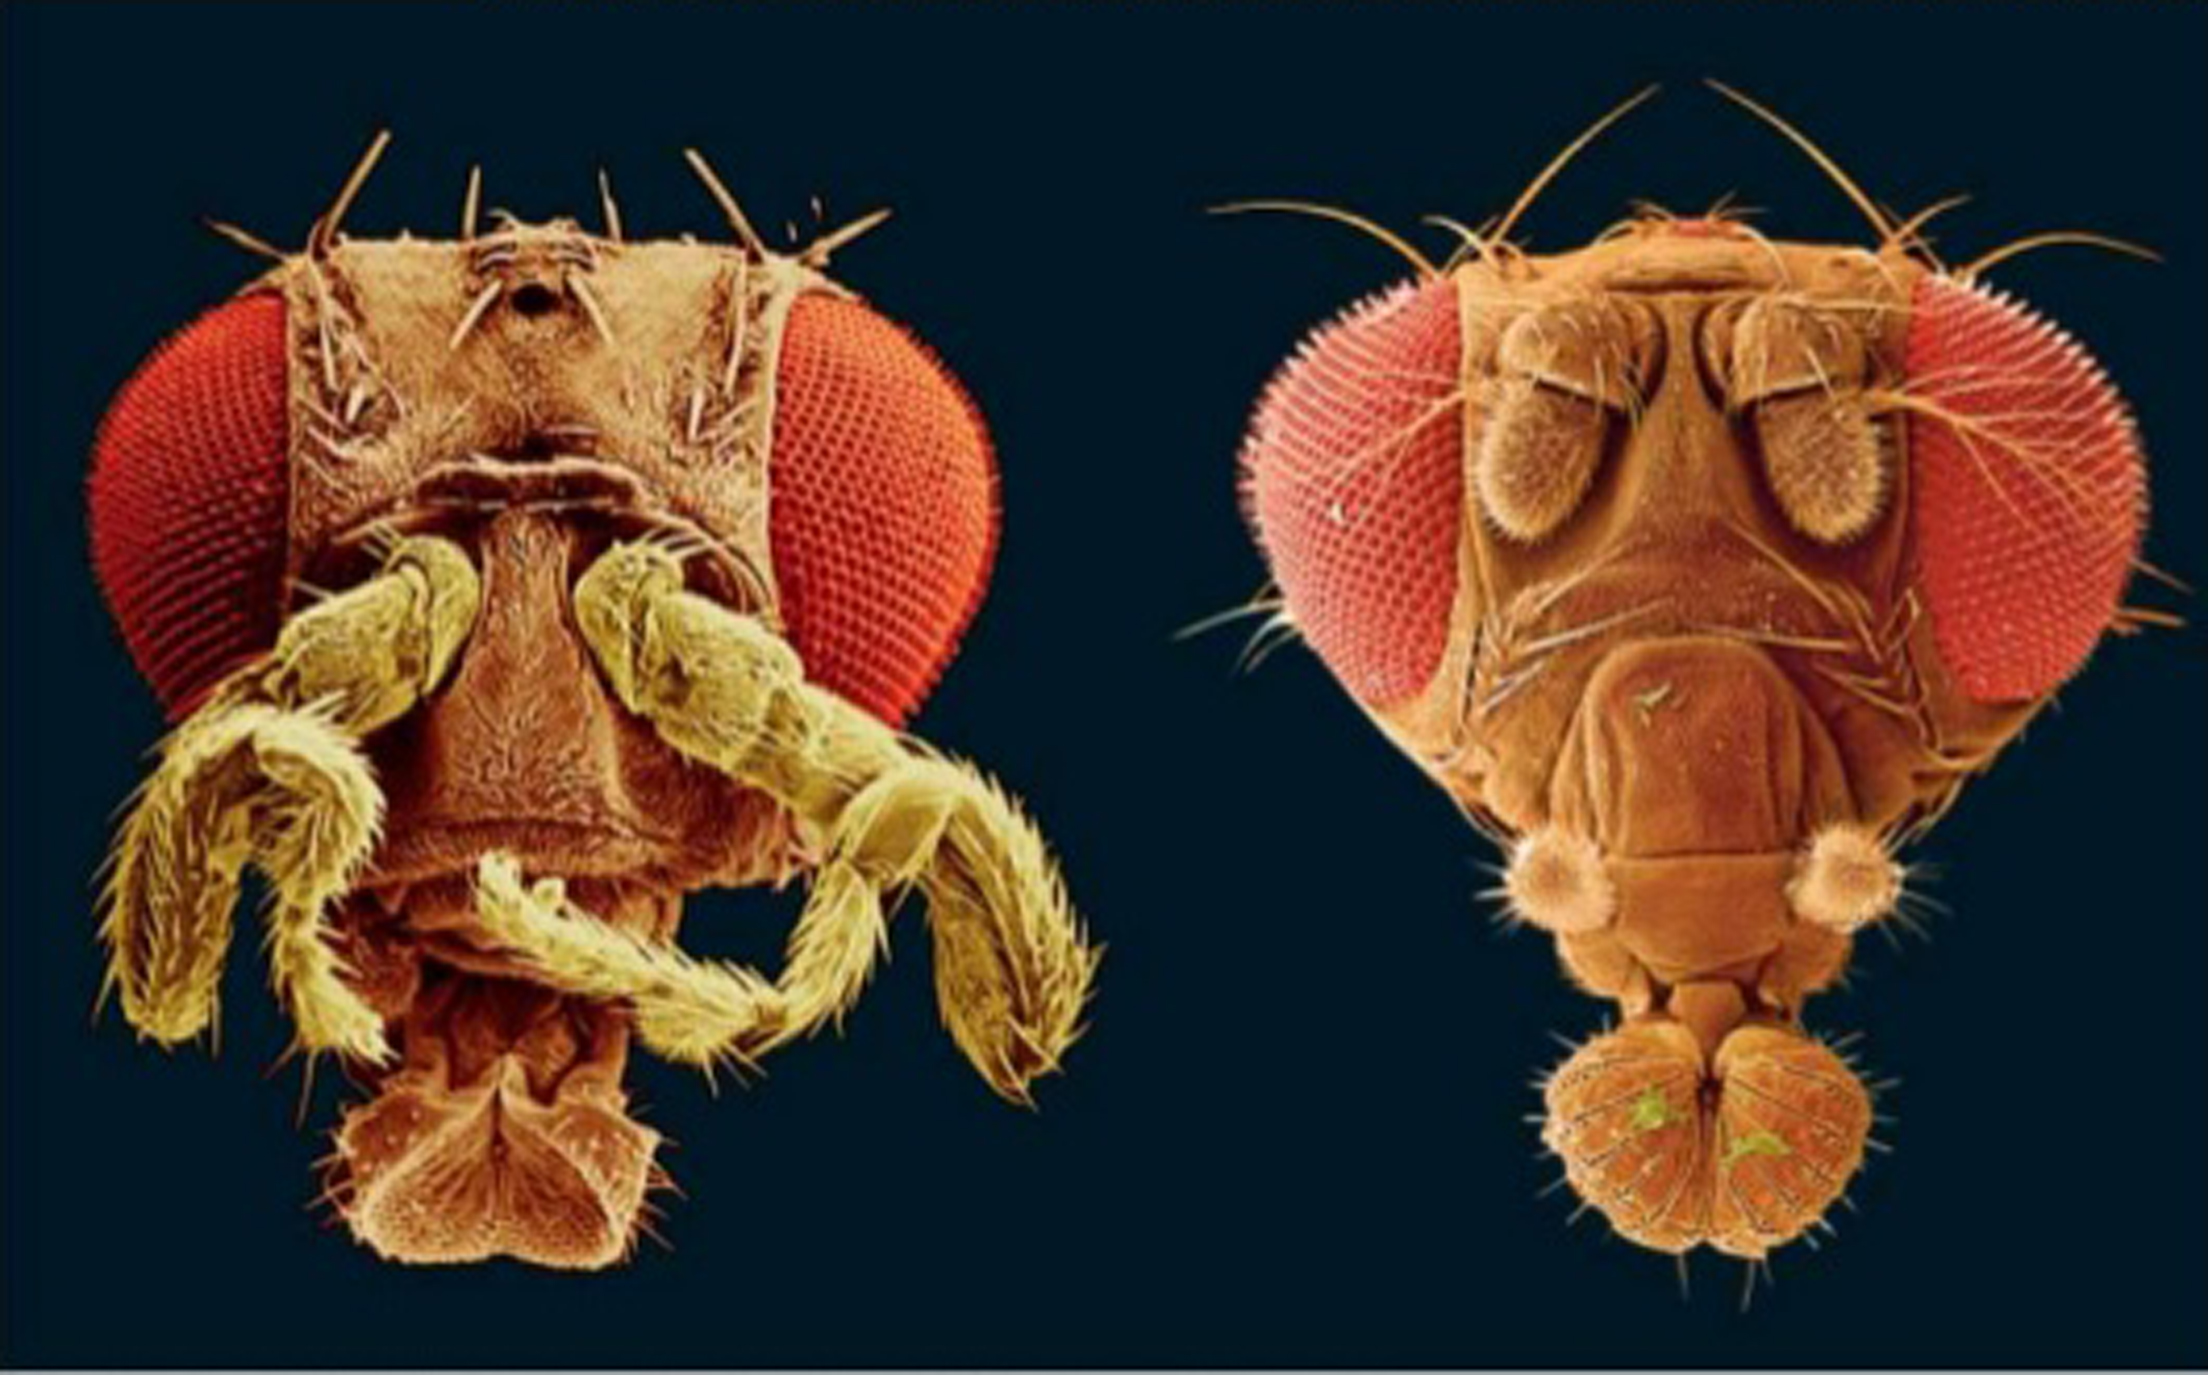 Artificially colored images of fruit flies taken with a scanning electron microscope. (Left) Expression of the gene  Antennapedia  in antennae as they develop causes them to transform into legs. (Right) Normal fruit fly with properly formed antennae. (Credit: Jürgen Berger, Max Planck Institute for Developmental Biology, Tübingen, Germany.Visuals Unlimited.)